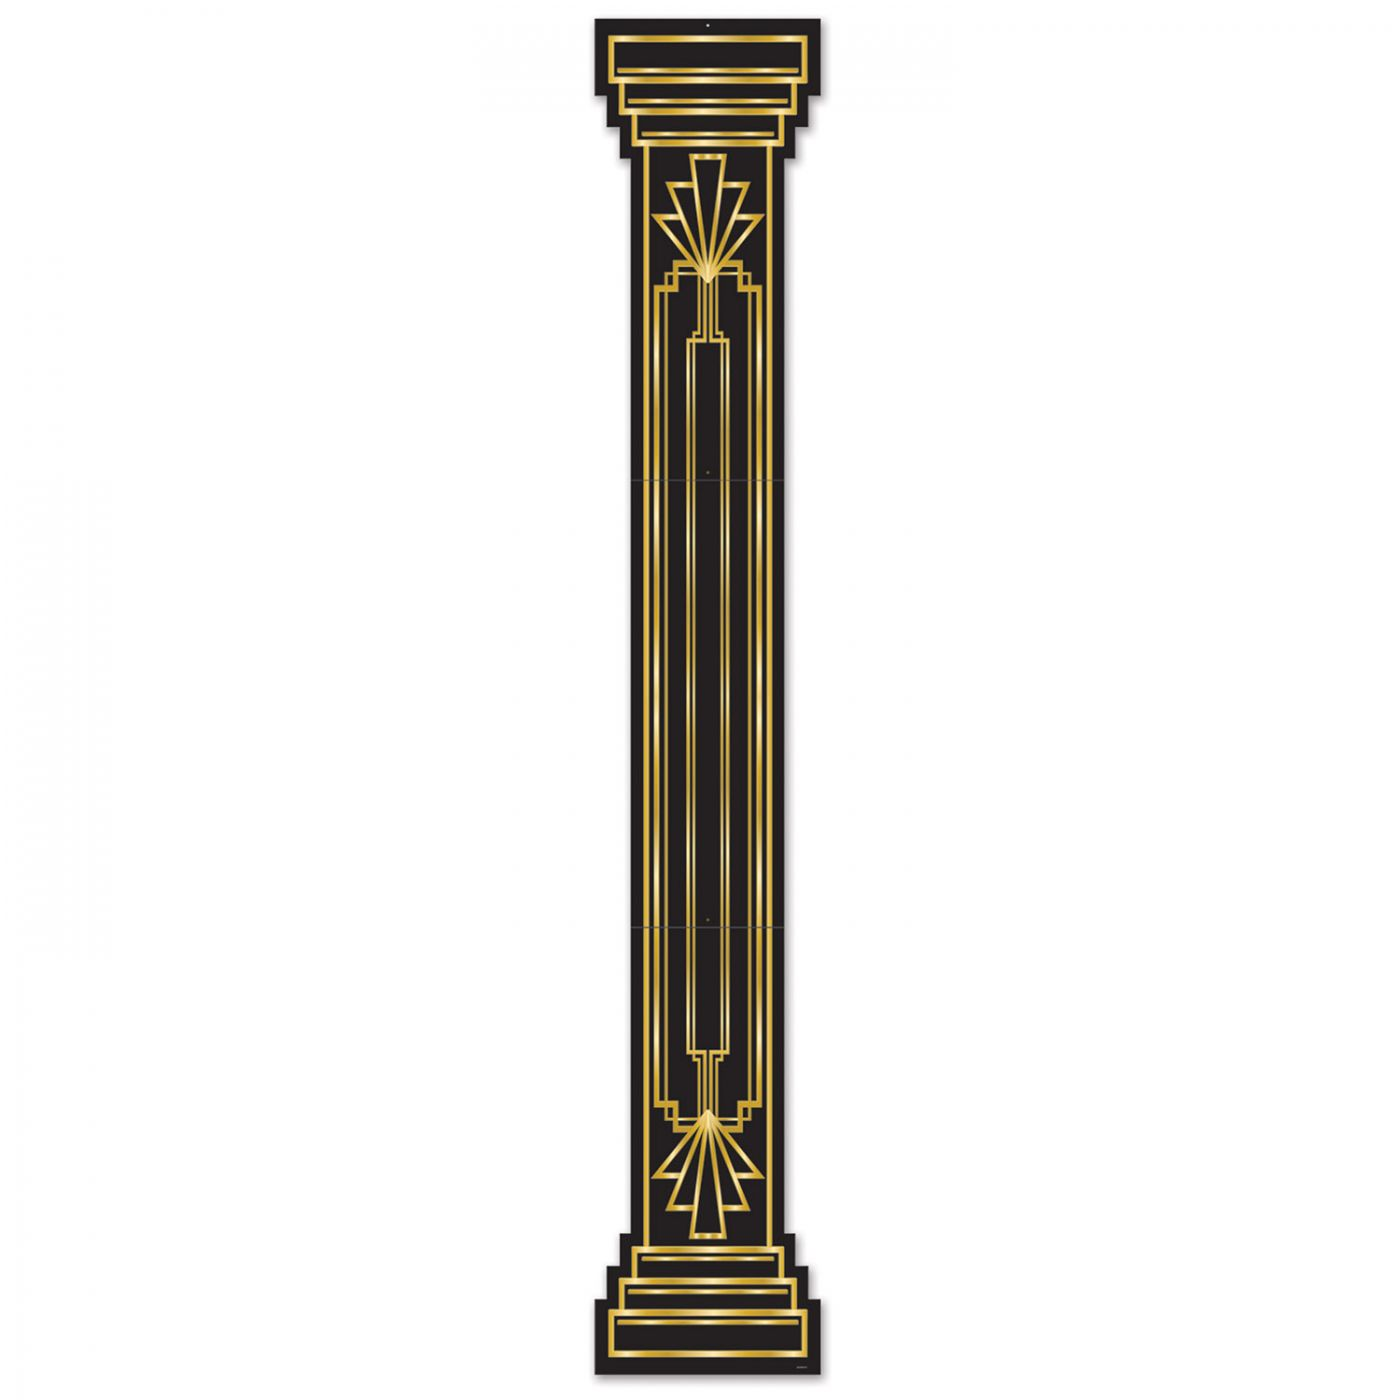 Jtd Great 20's Column Pull-Down Cutout image